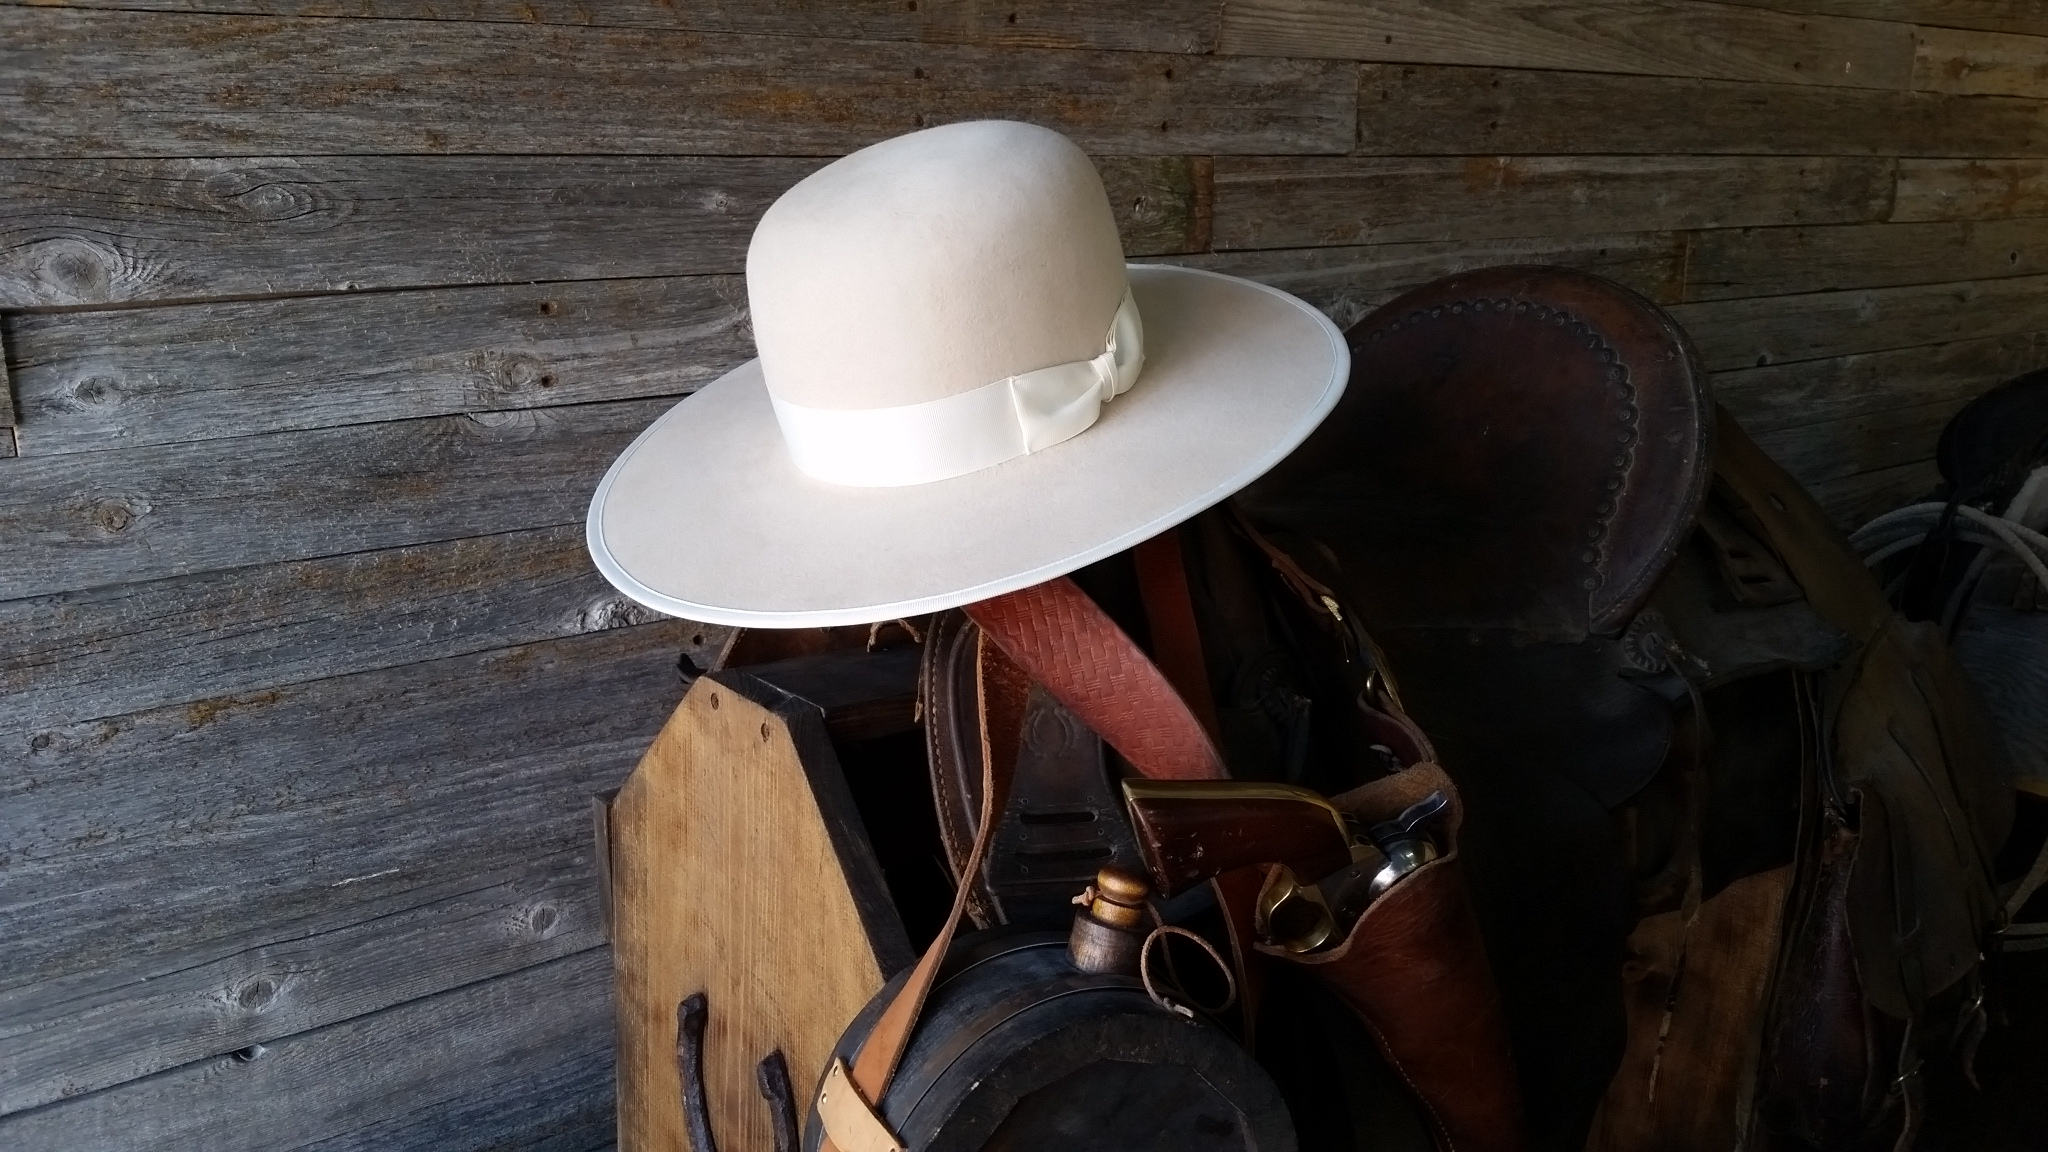 Cowboys in Utah wore a boss of the plains hat. 20150925 145322  20150925 144421 20151017 090950 20150925 145116 ... a034e0e74da6